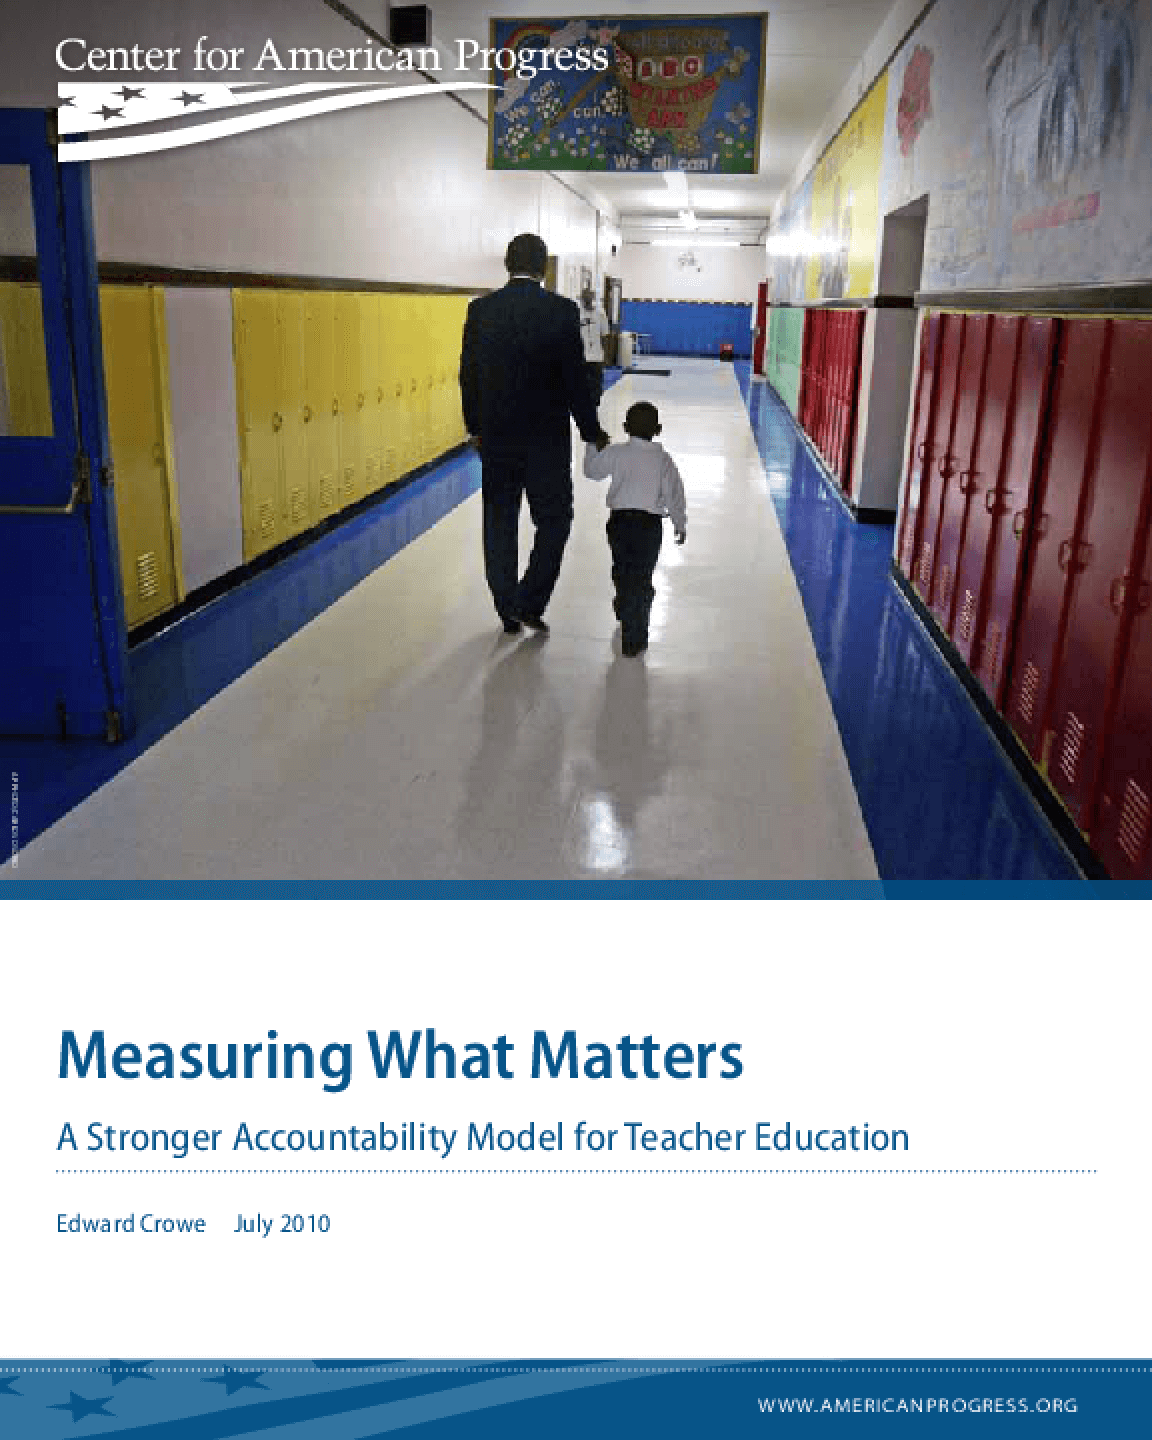 Measuring What Matters: A Stronger Accountability Model for Teacher Education